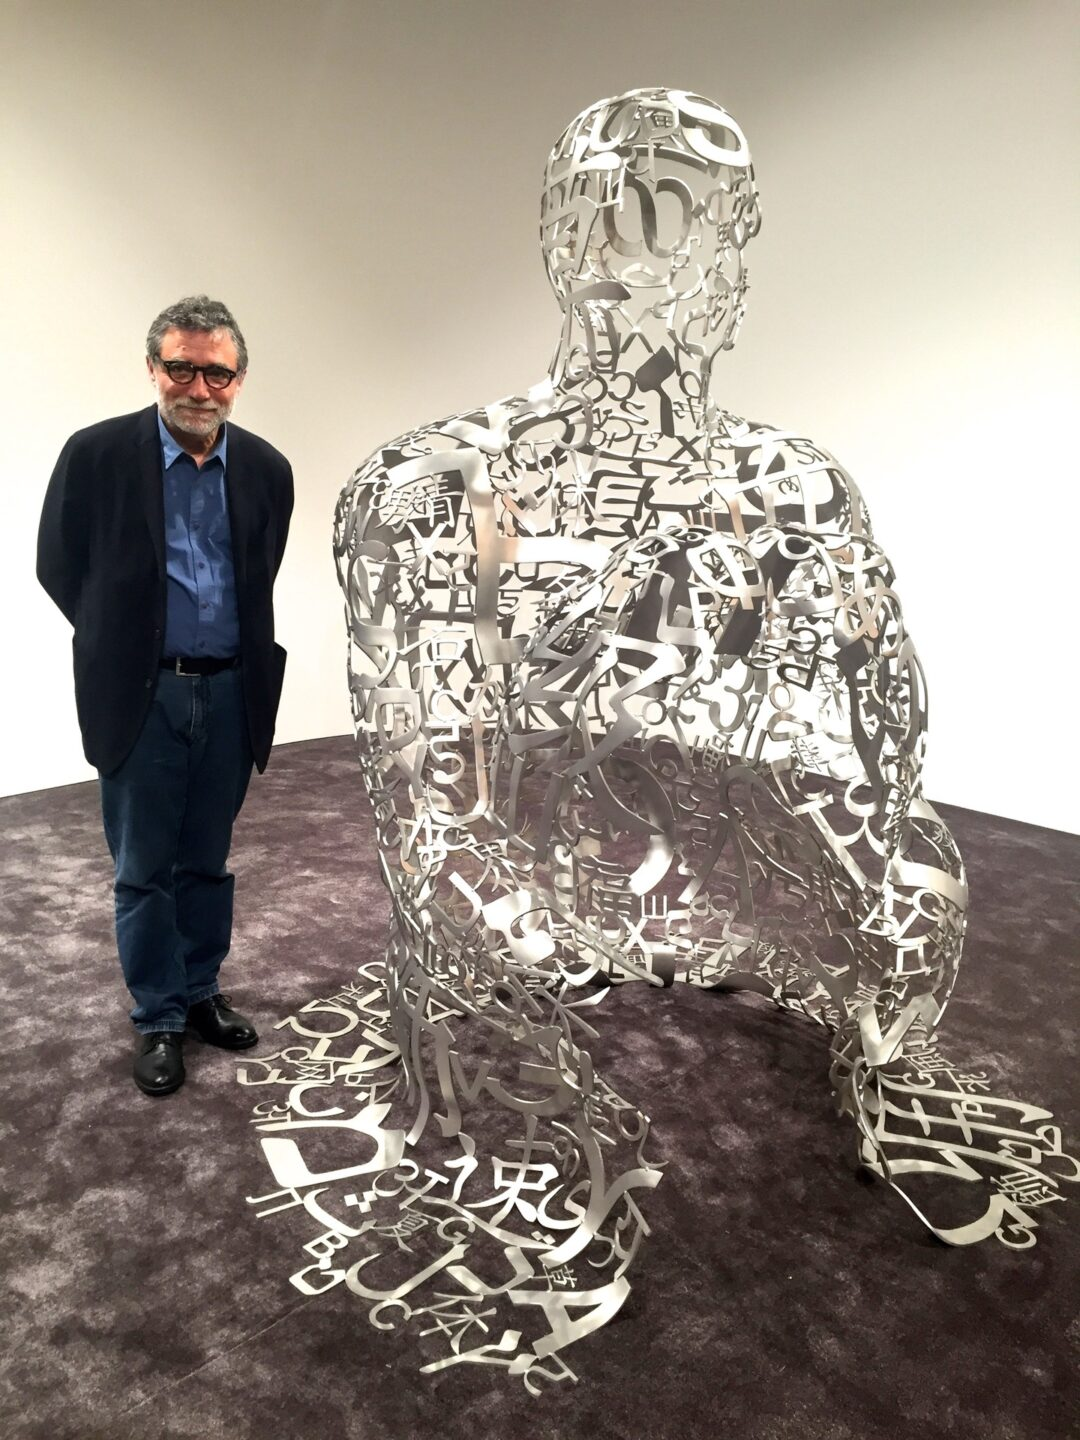 Jaume Plensa & His Sculpture for Ruinart Champagne